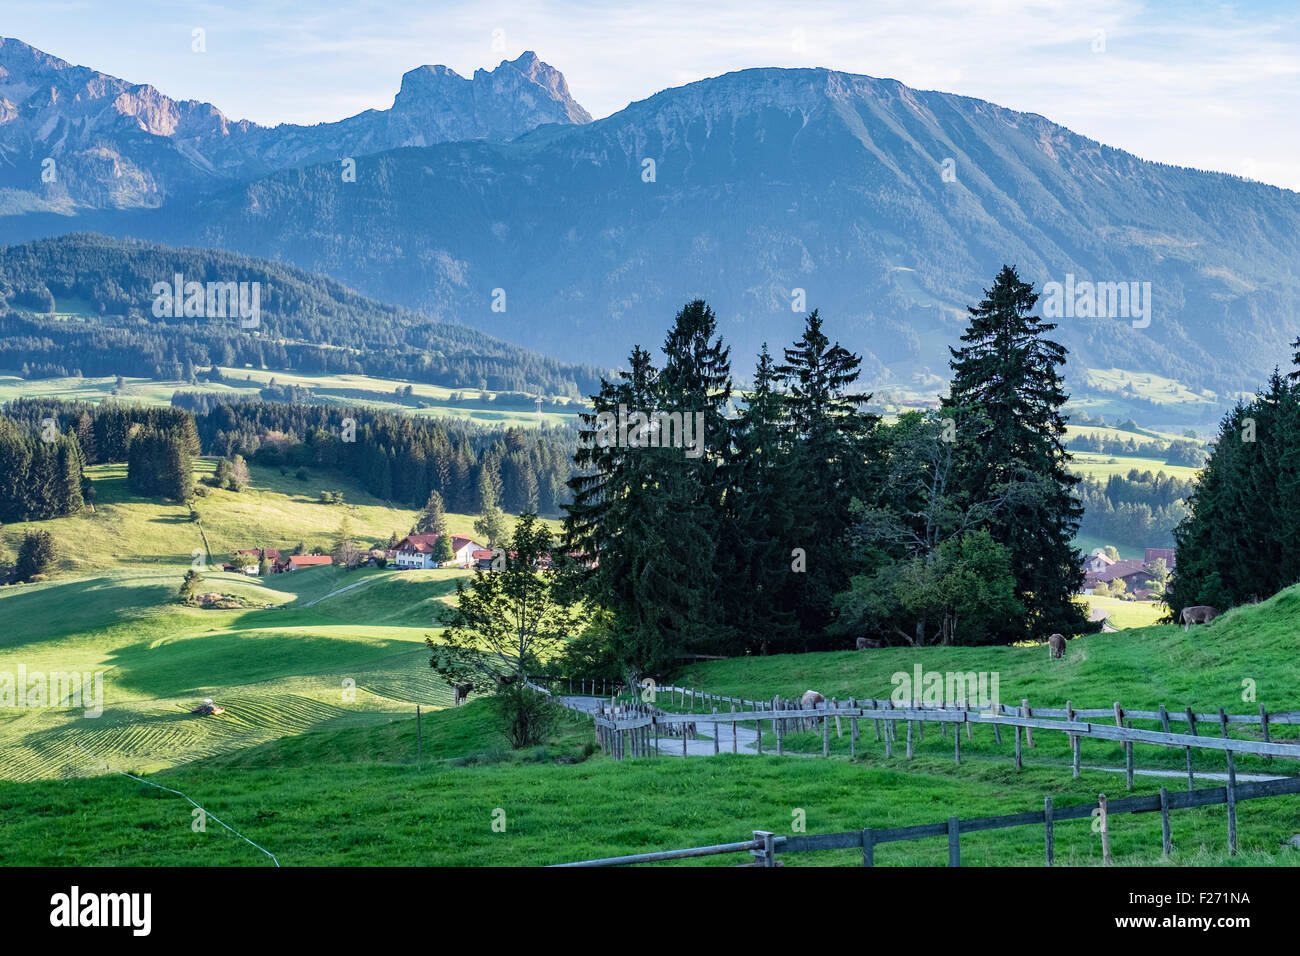 Bavarian Alps, landscape view of farm land, trees, mountains and sky, Eastern Allgaü, Bavaria, Germany - Stock Image